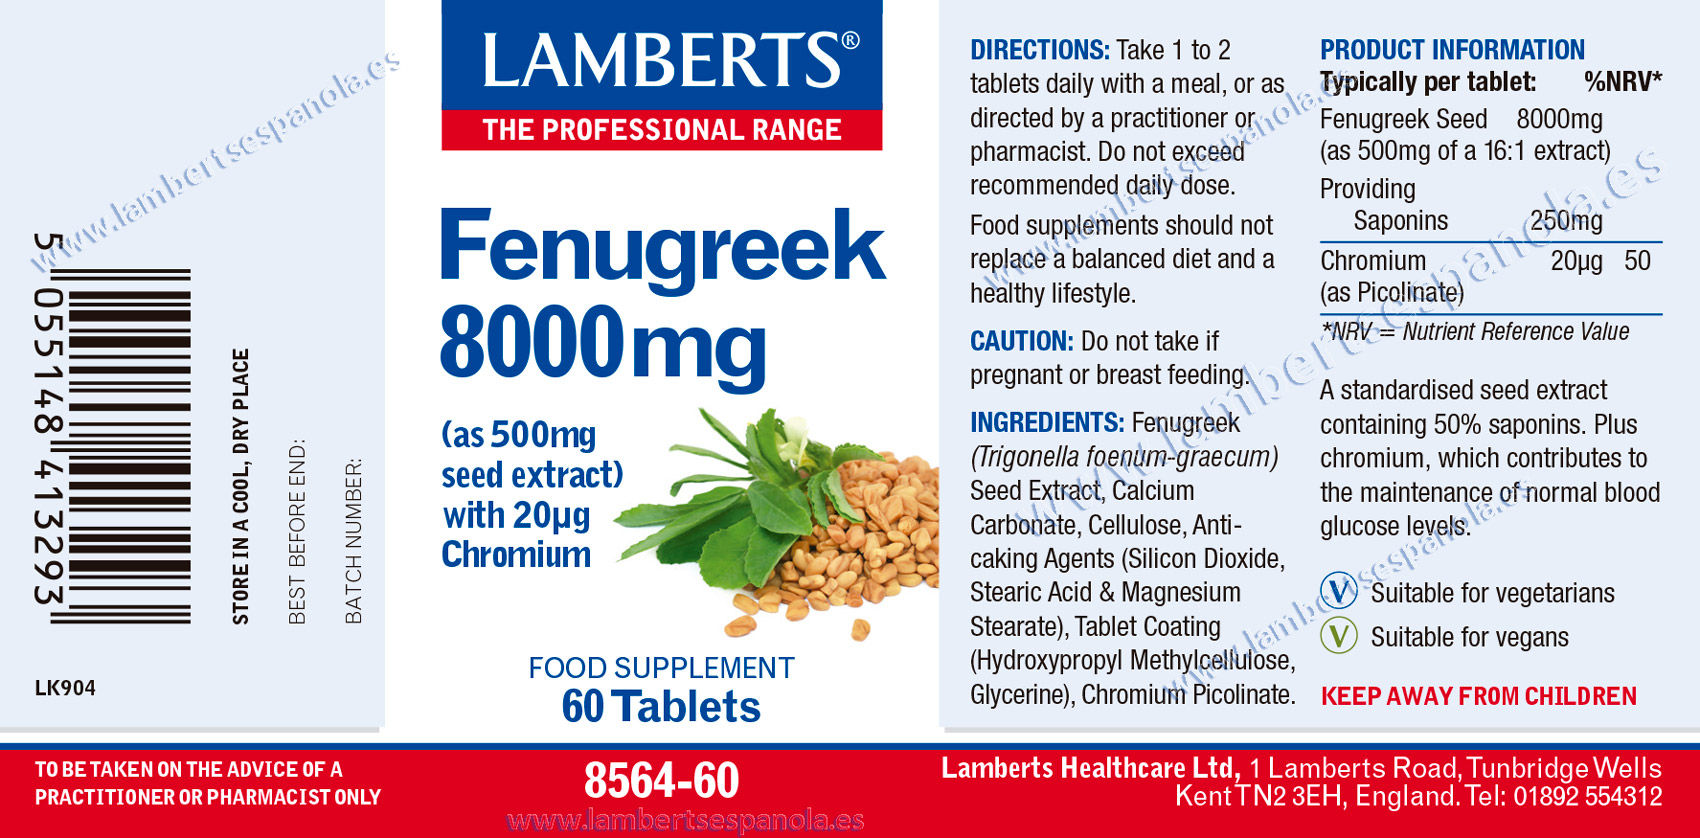 Lamberts Fenugreek 8.000mg label with indications and properties